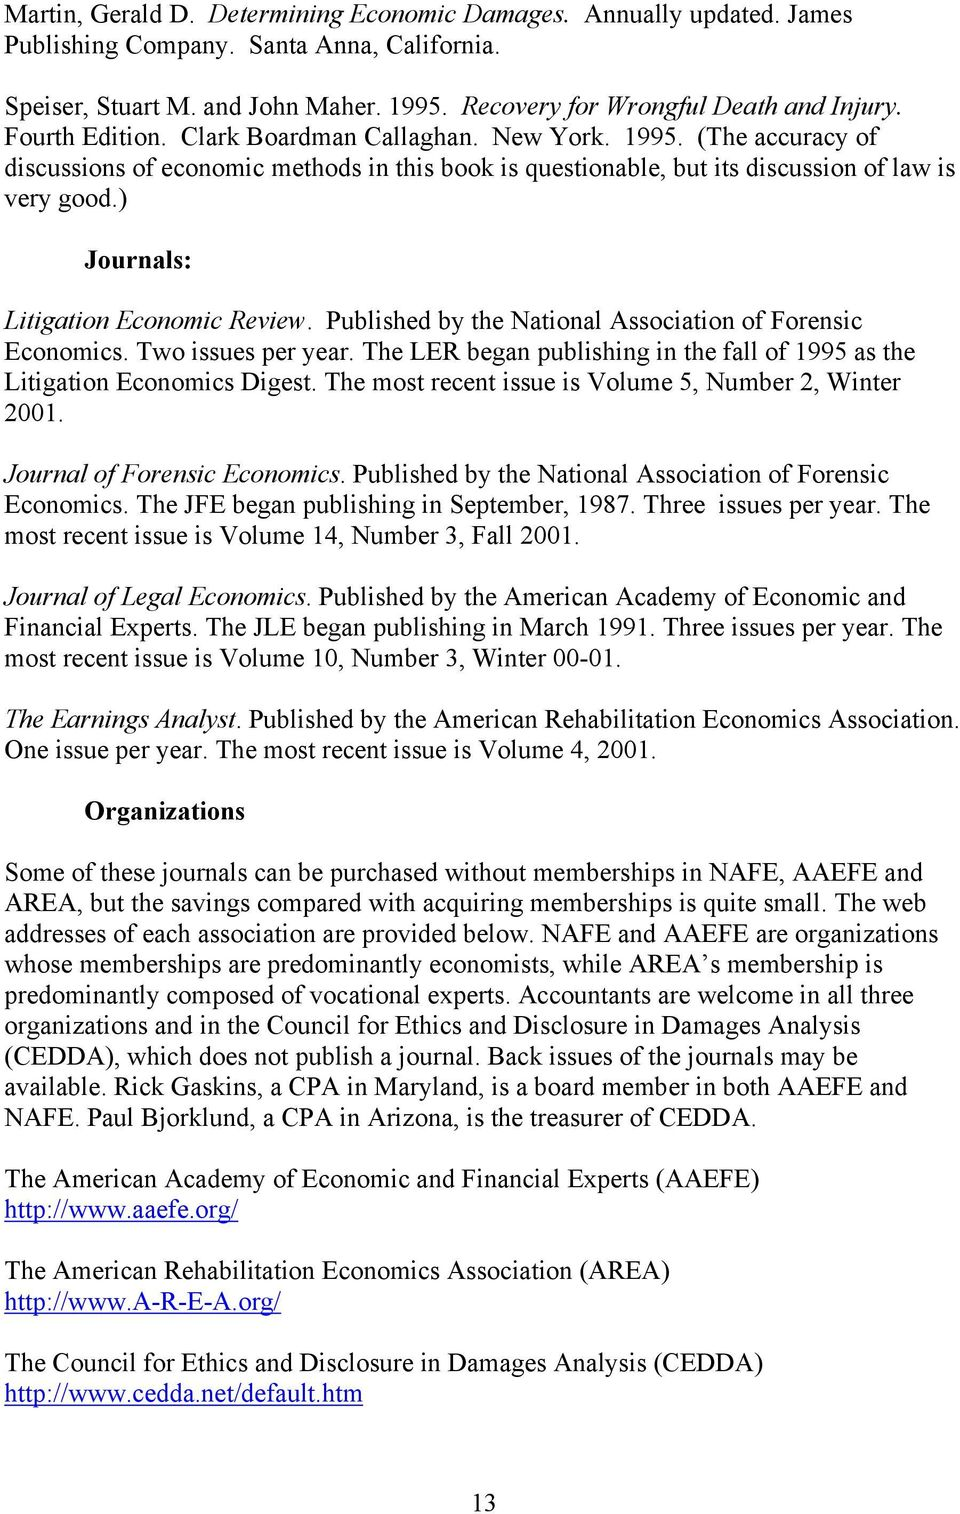 ) Journals: Litigation Economic Review. Published by the National Association of Forensic Economics. Two issues per year.